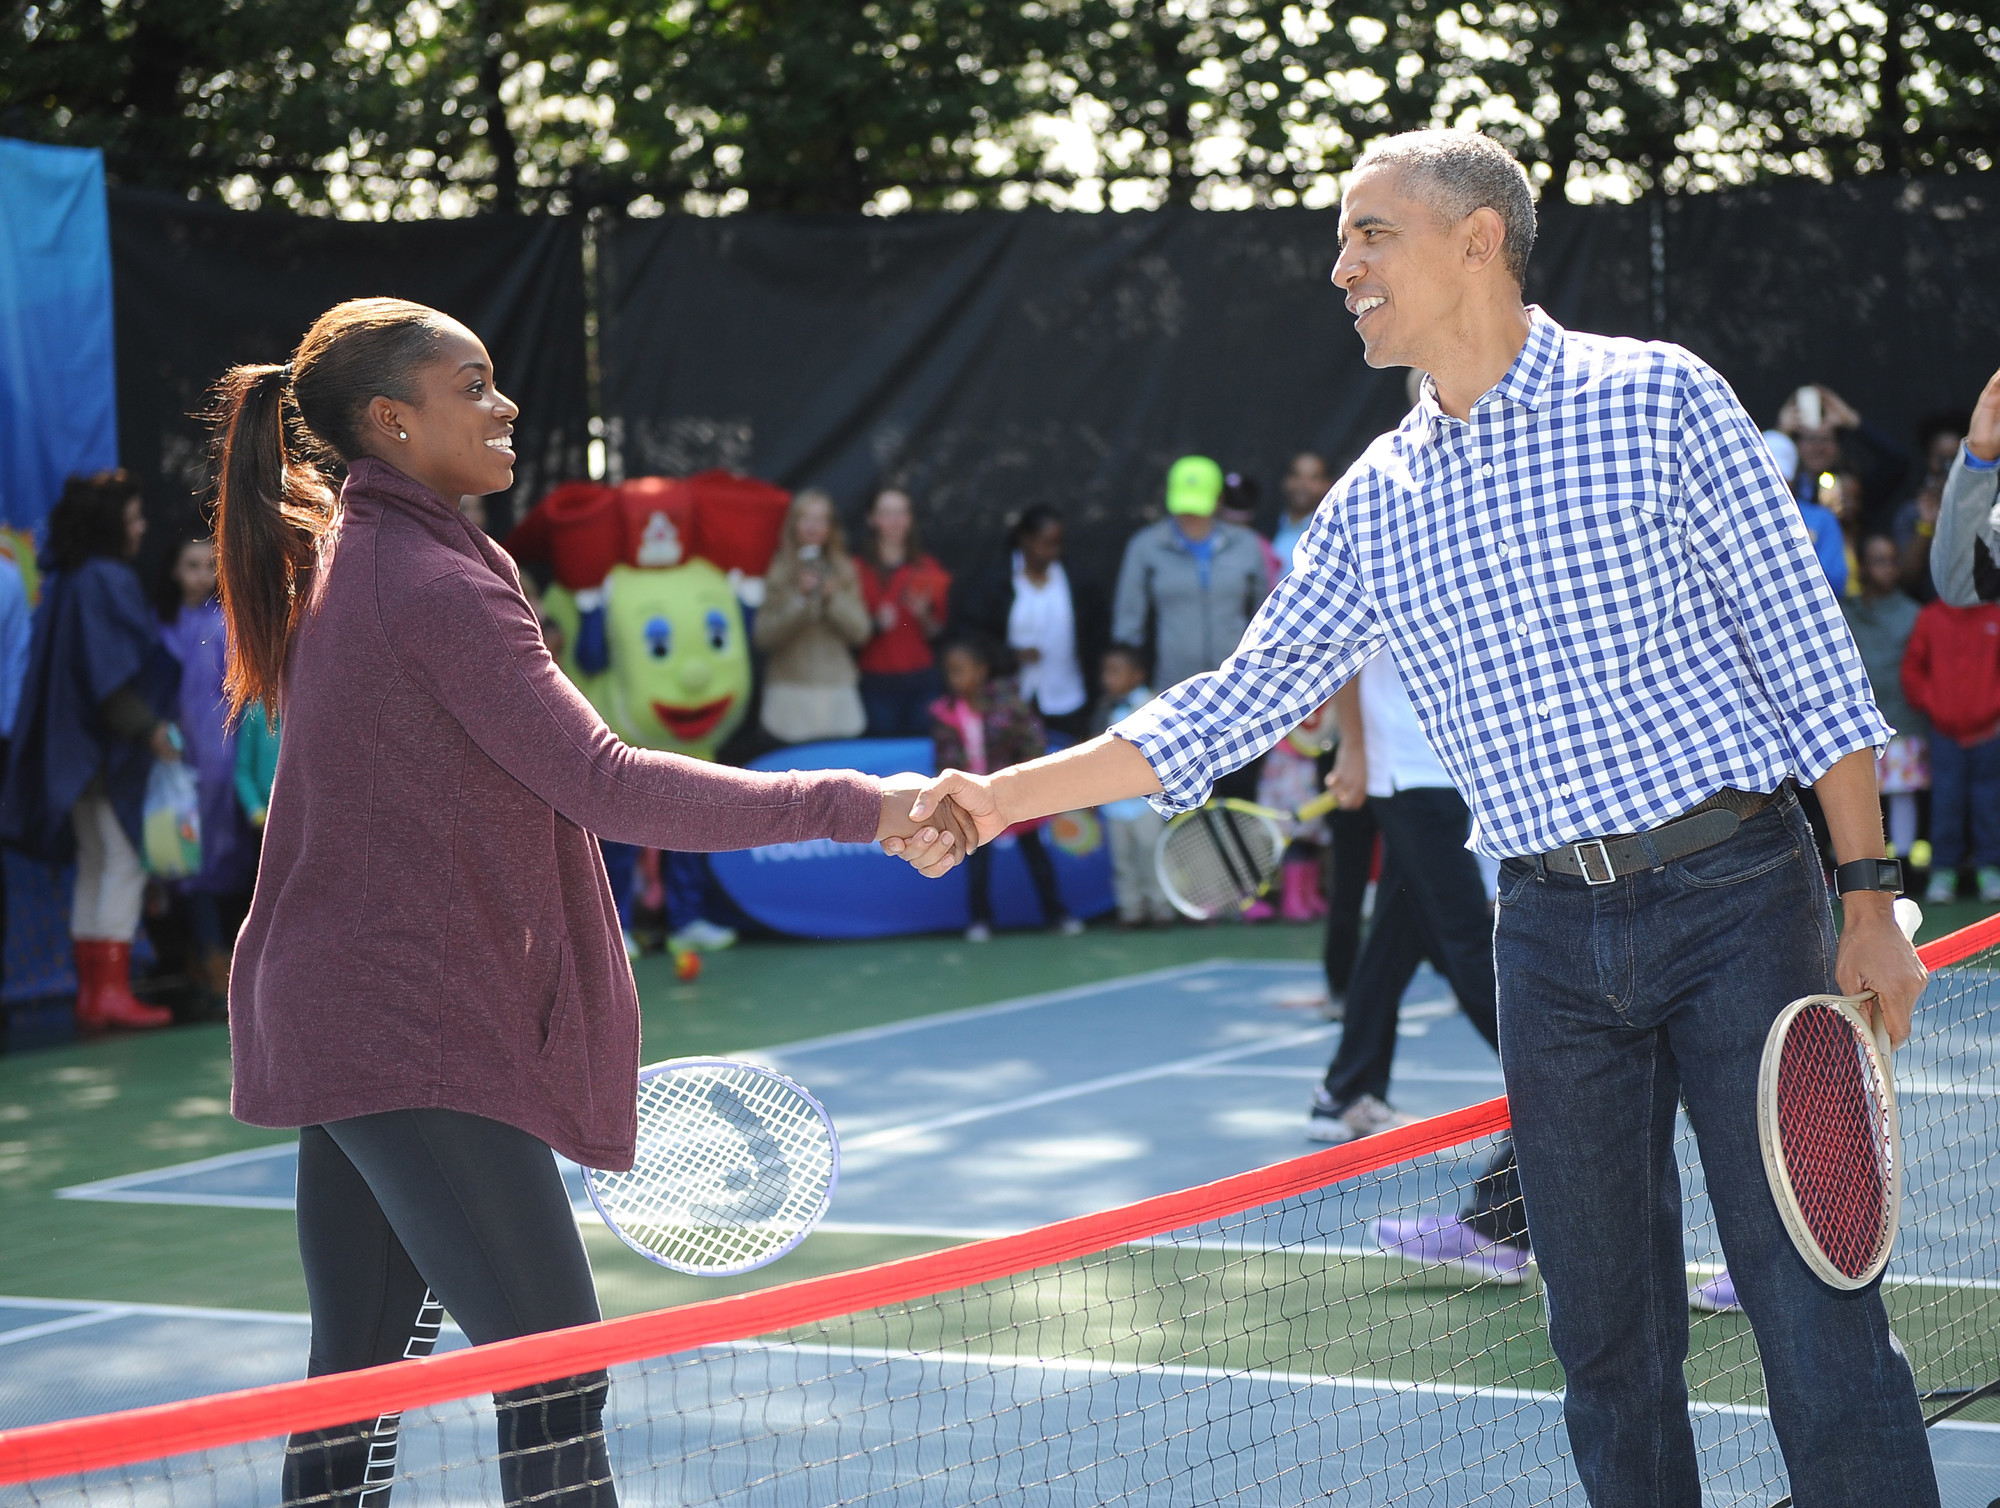 President Obama Plays Tennis at White House Easter Egg Roll